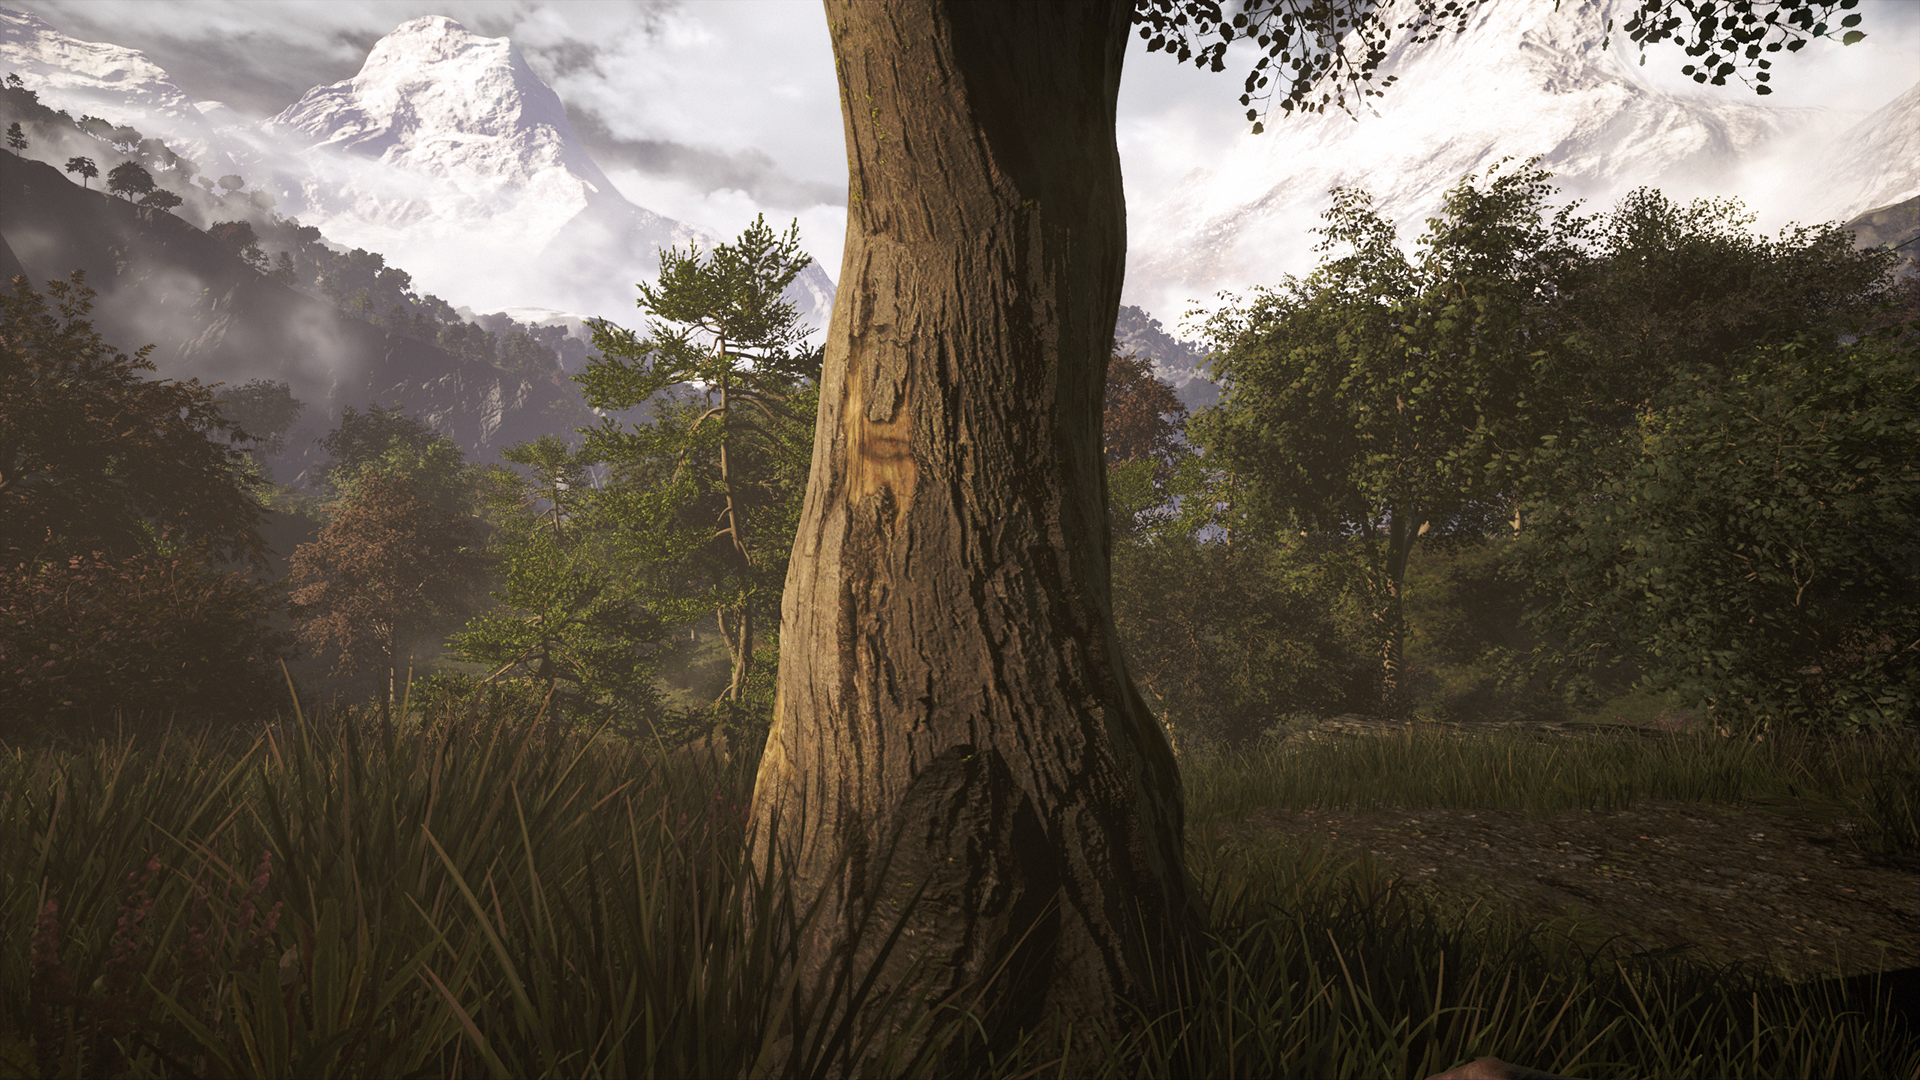 GeForce.com Far Cry 4 Trees Relief Interactive Comparison ...